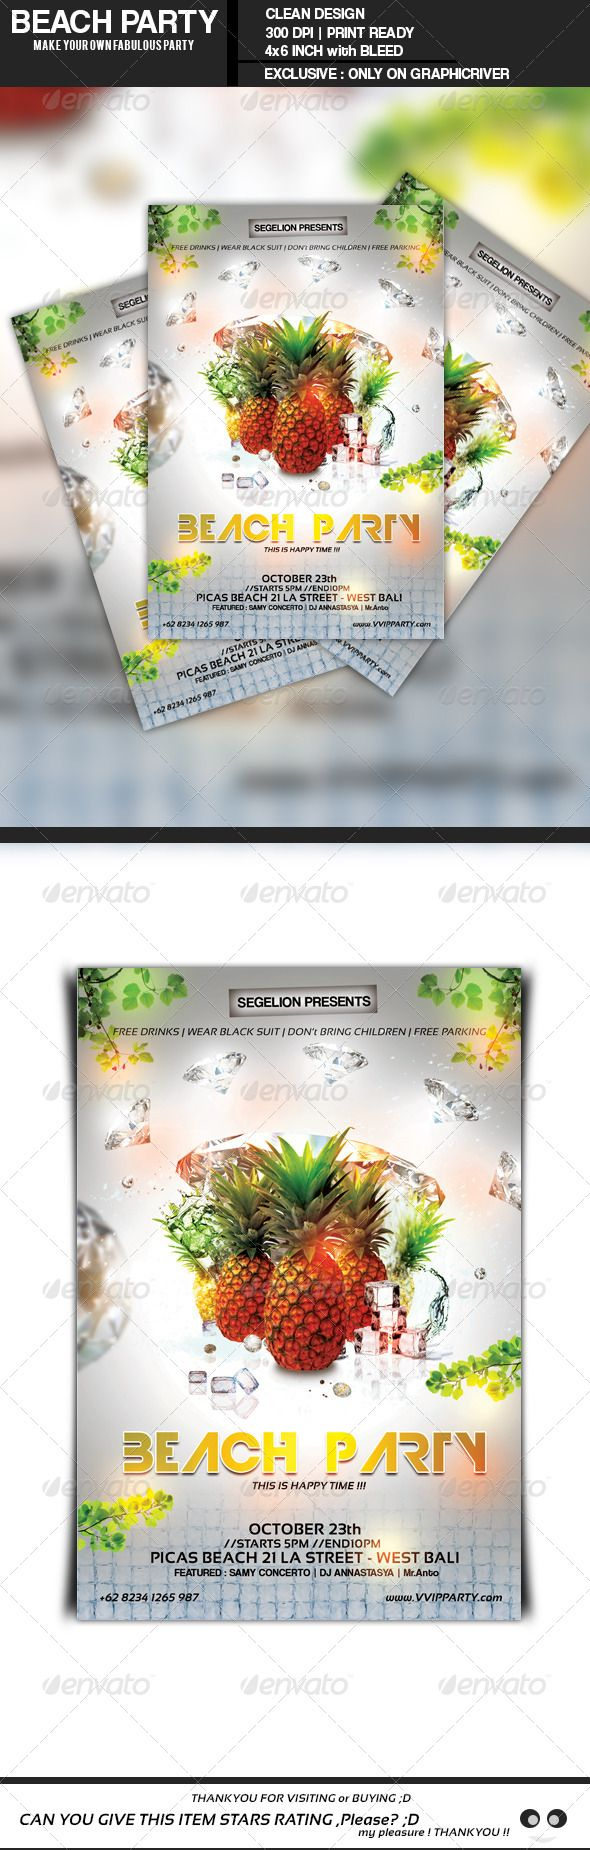 87 best Print Templates images on Pinterest | Print templates ...